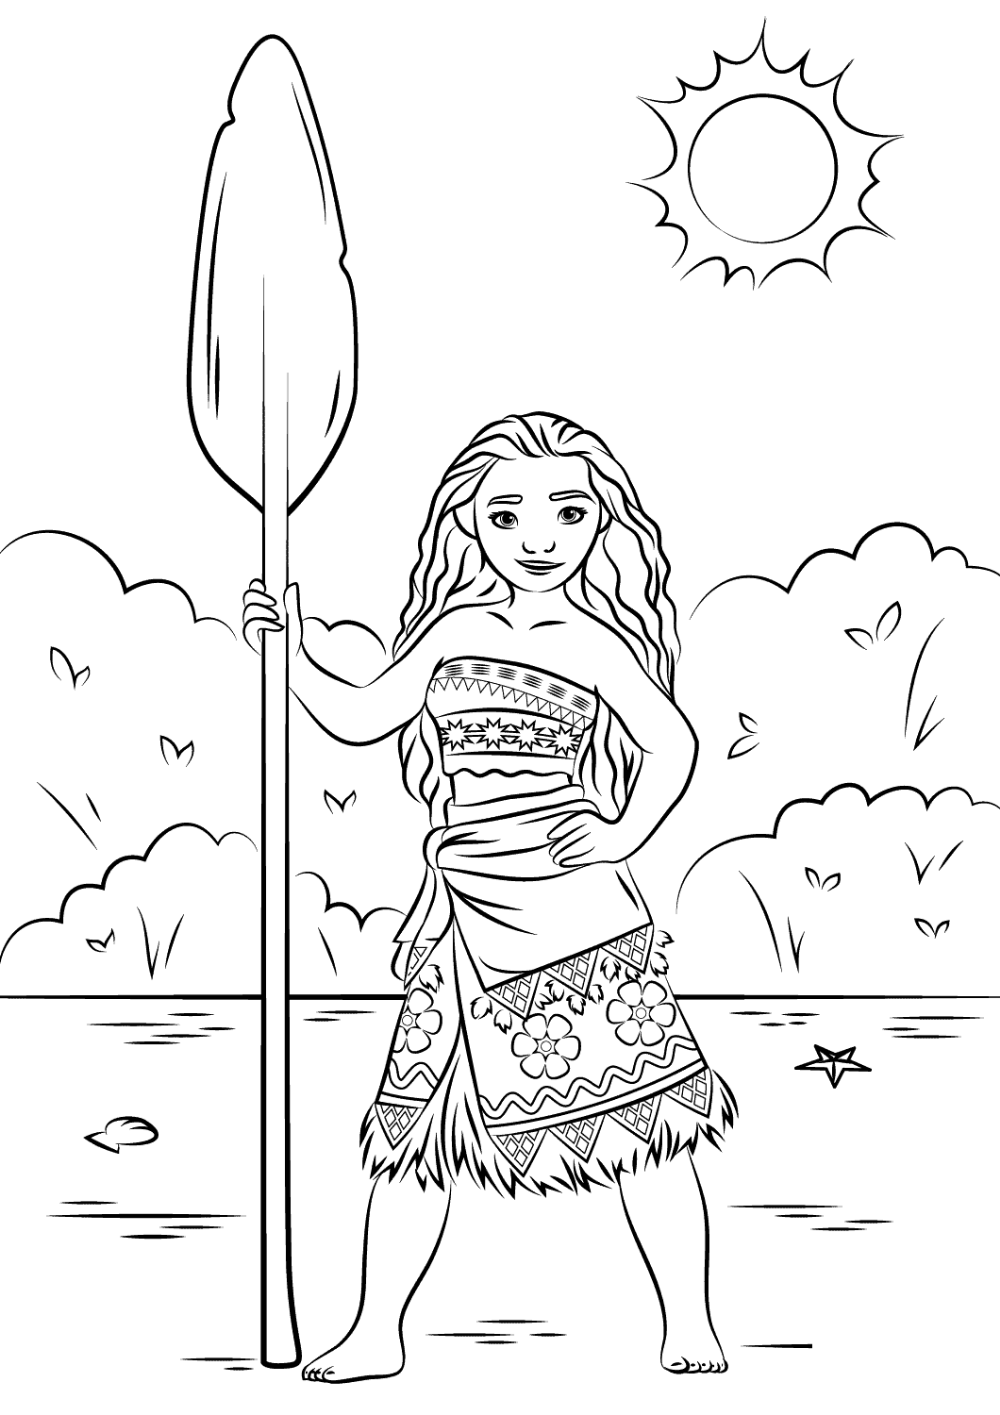 Moana Coloring Book Worksheet For Kids Educative Printable Moana Coloring Pages Disney Coloring Sheets Disney Princess Coloring Pages